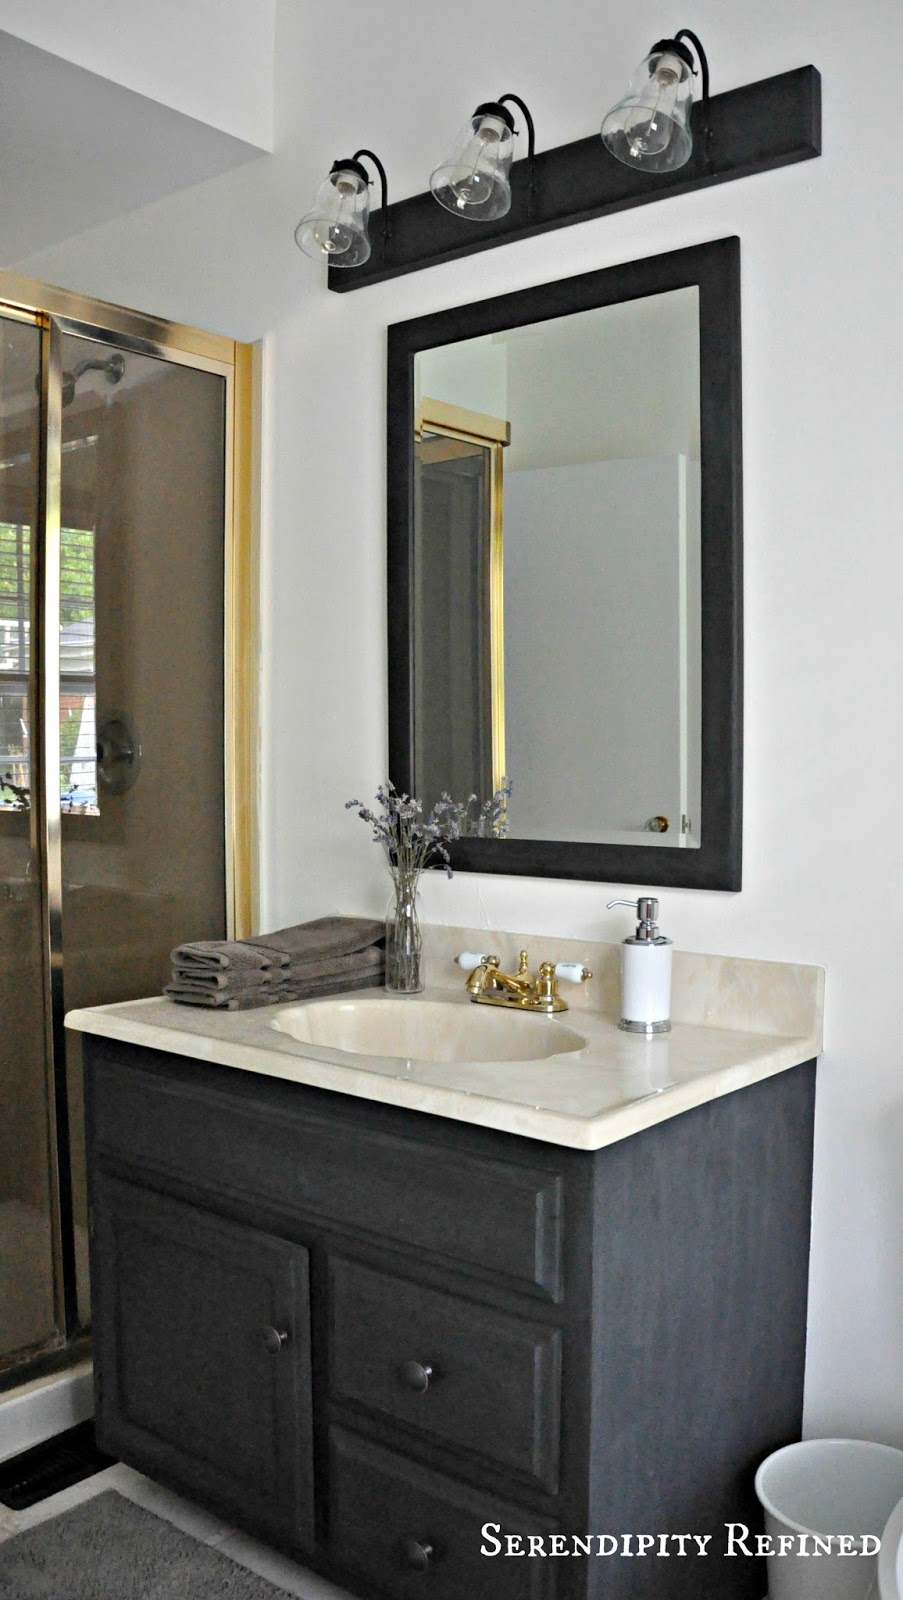 Serendipity refined blog how to update oak and brass - Images of bathroom vanity lighting ...